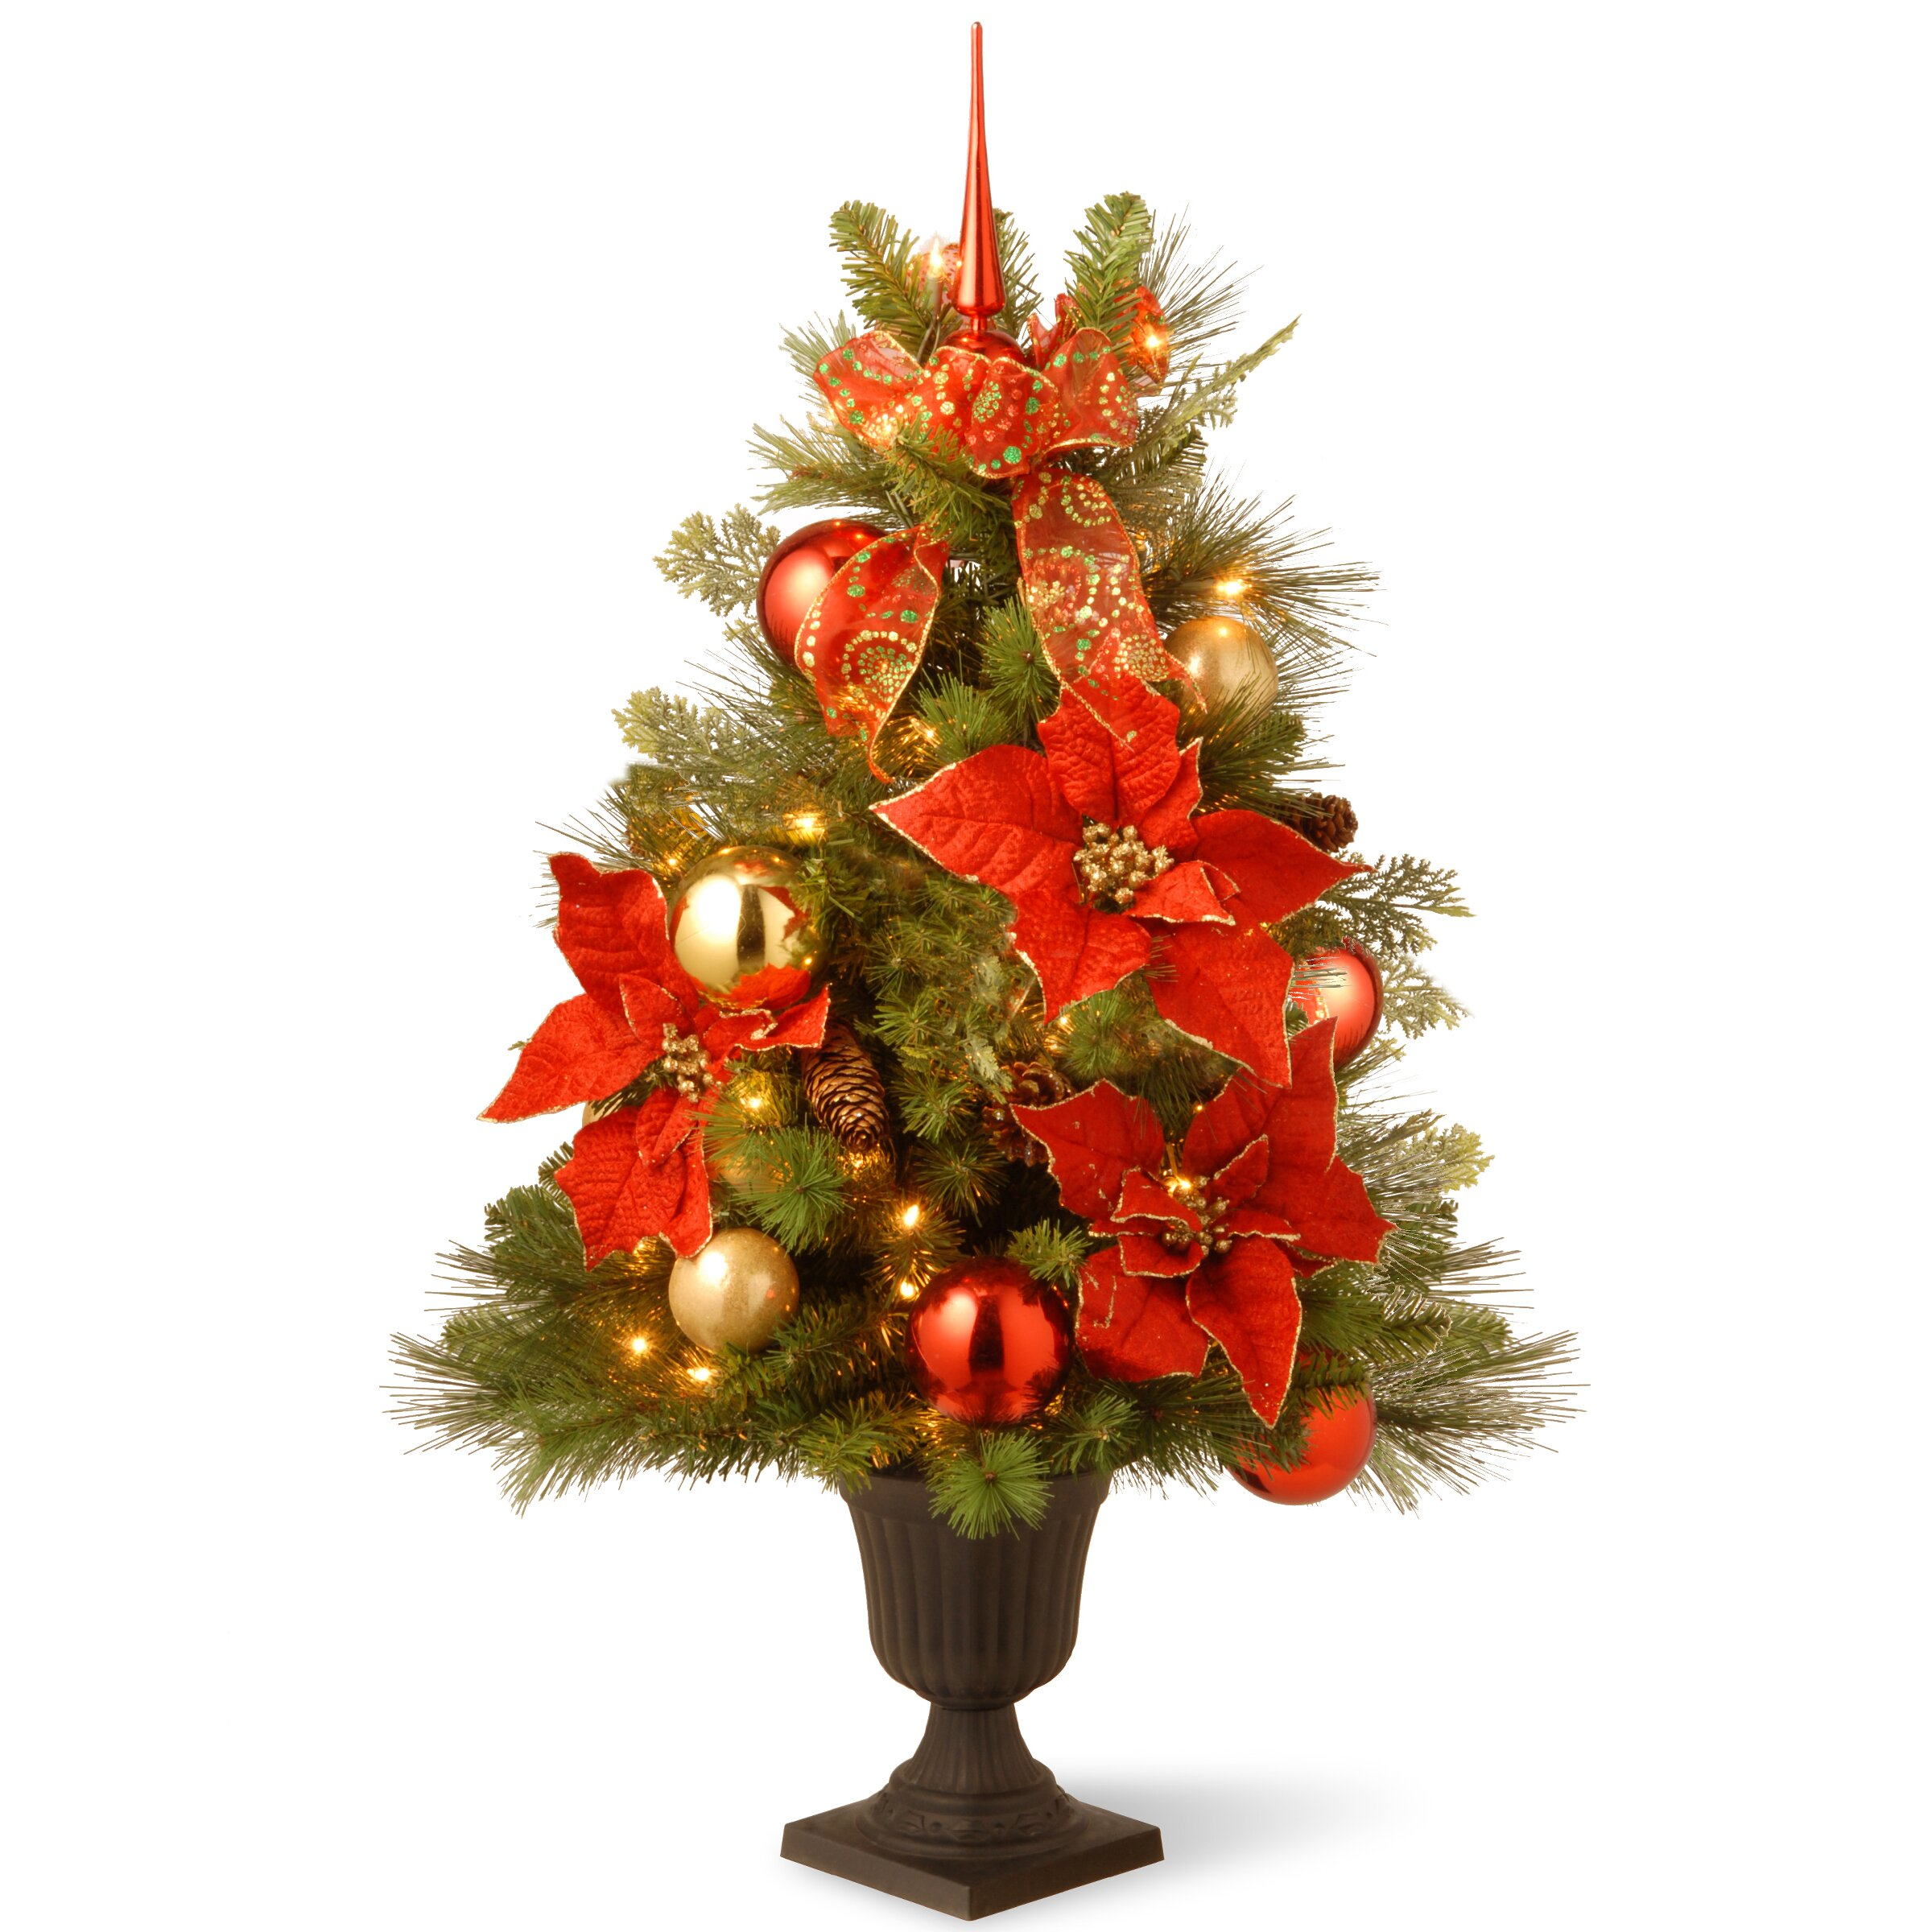 National Tree Co. 3' Green Pine Artificial Christmas Tree